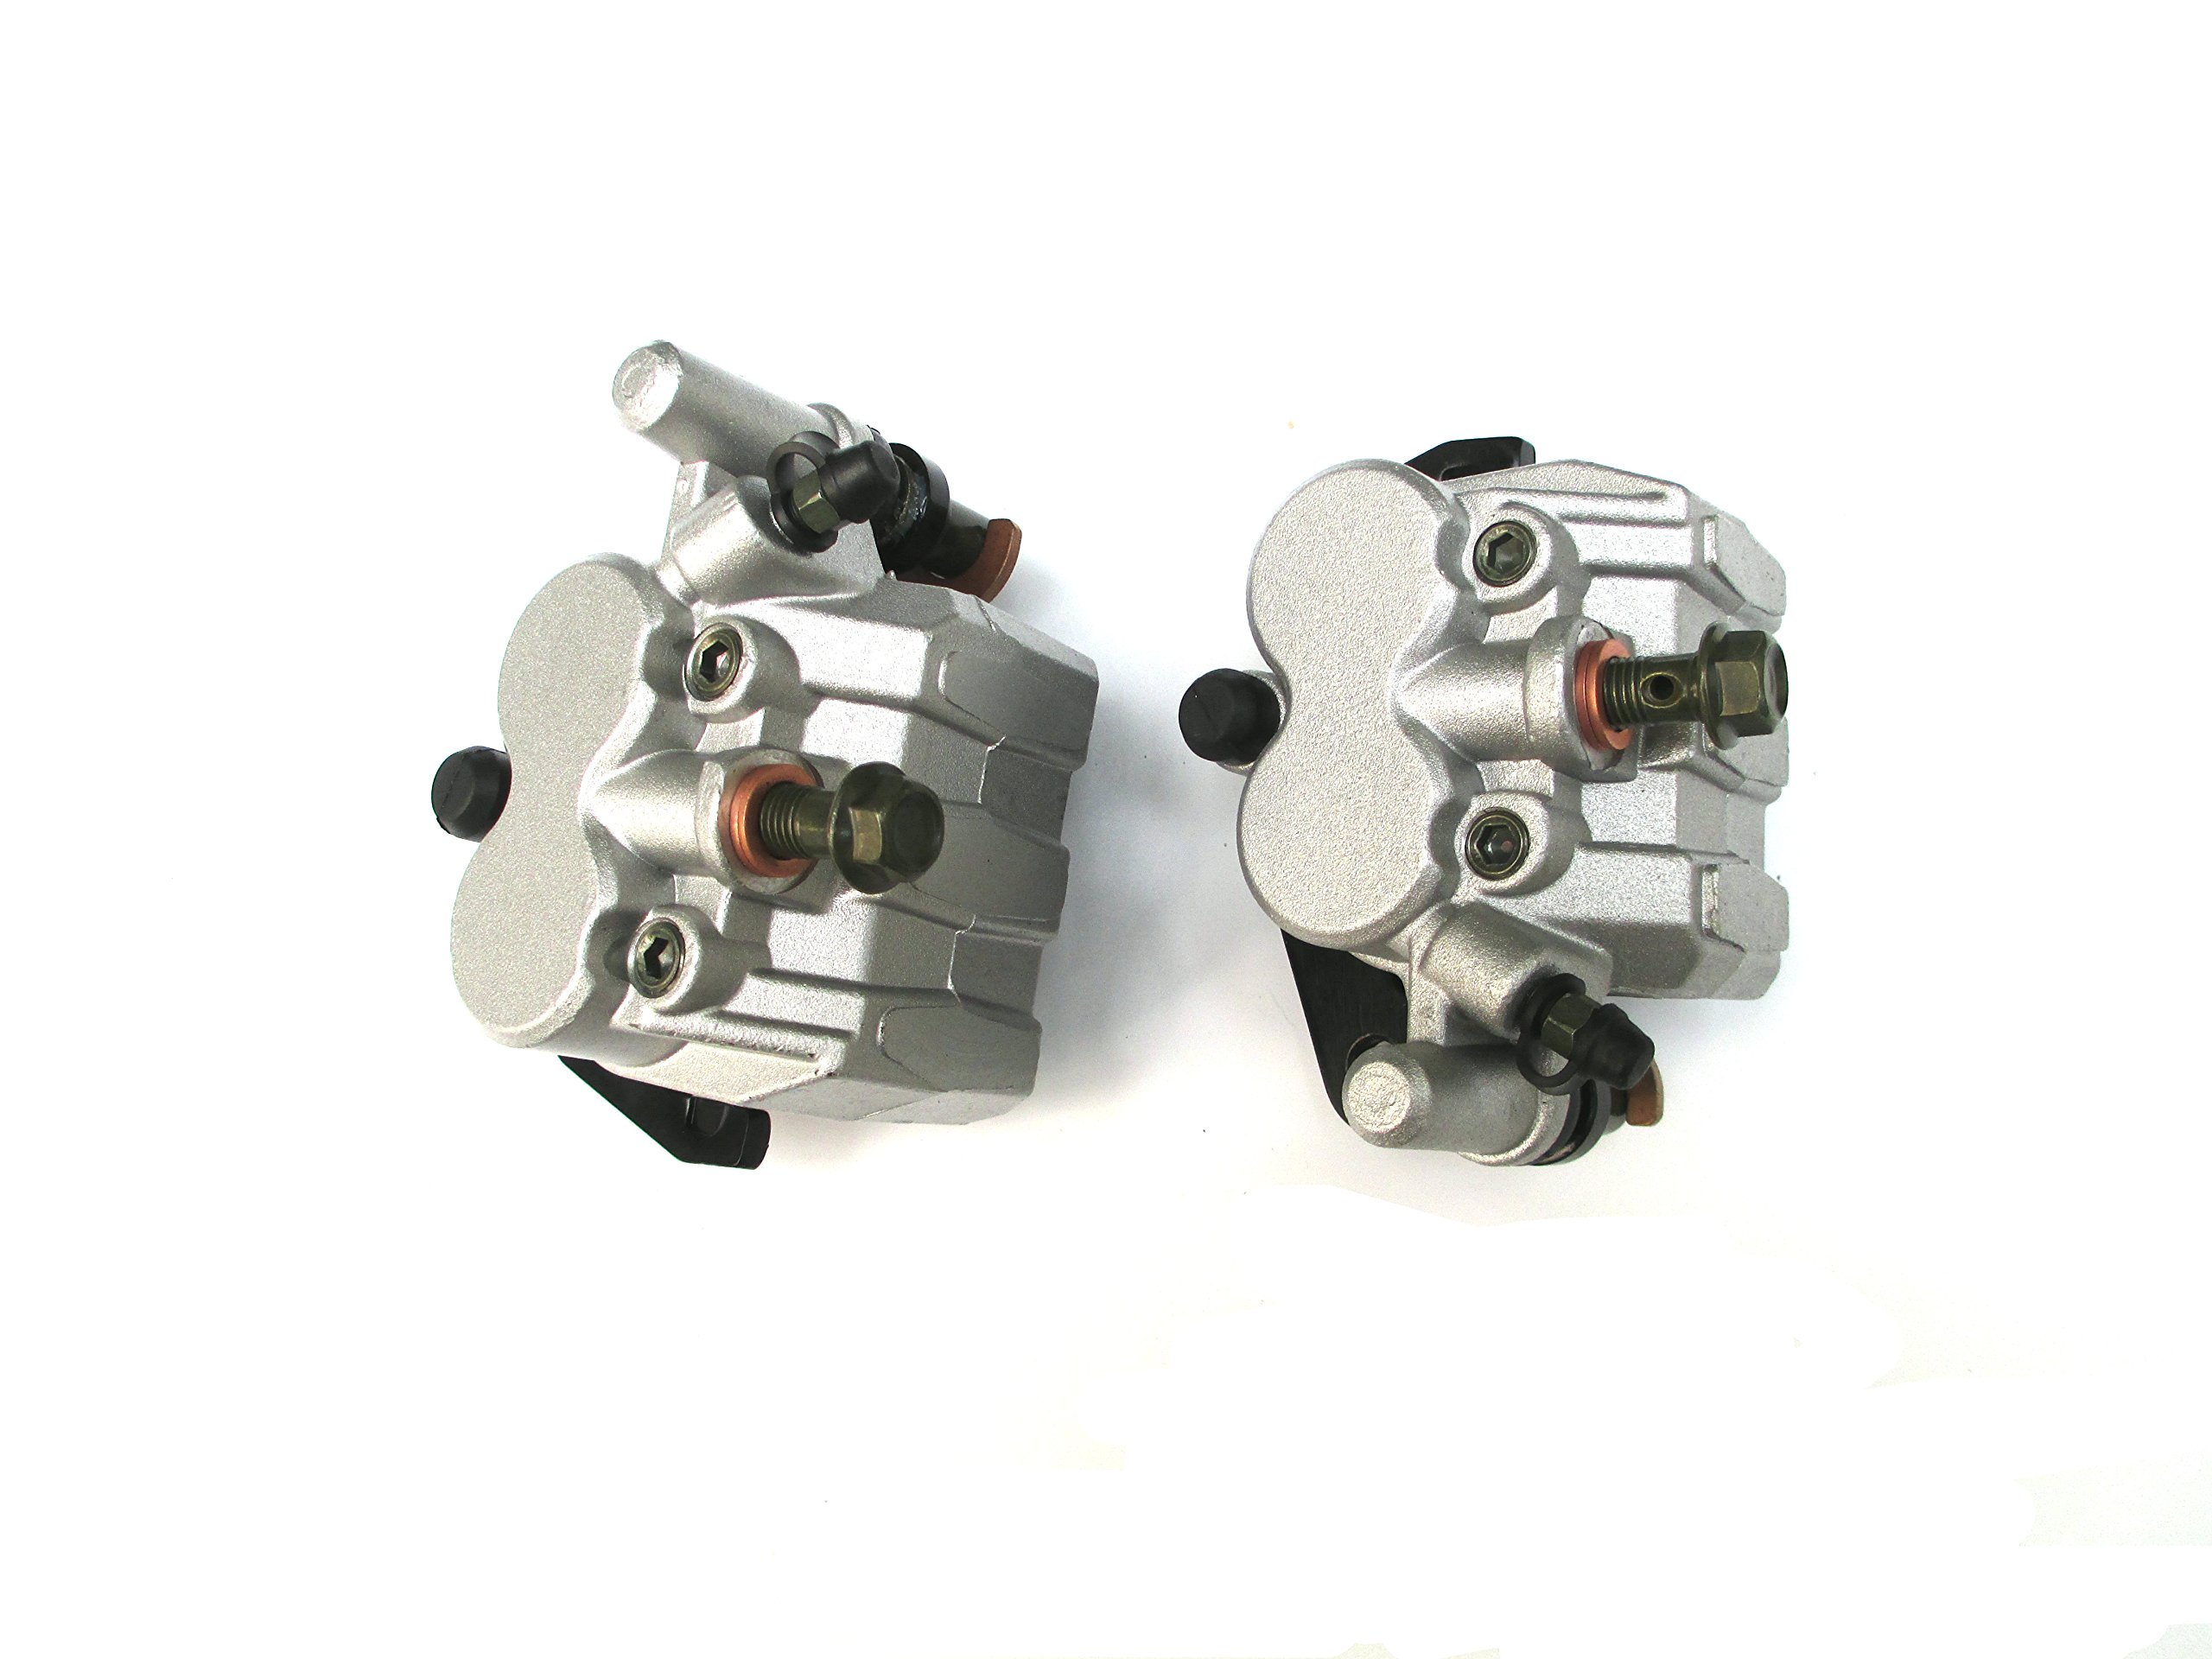 New Left & Right Front Brake Caliper FITS Yamaha Rhino Yamaha Rhino 660 YXR 450 2006 2007 2008 2009 by USonline911 (Image #1)